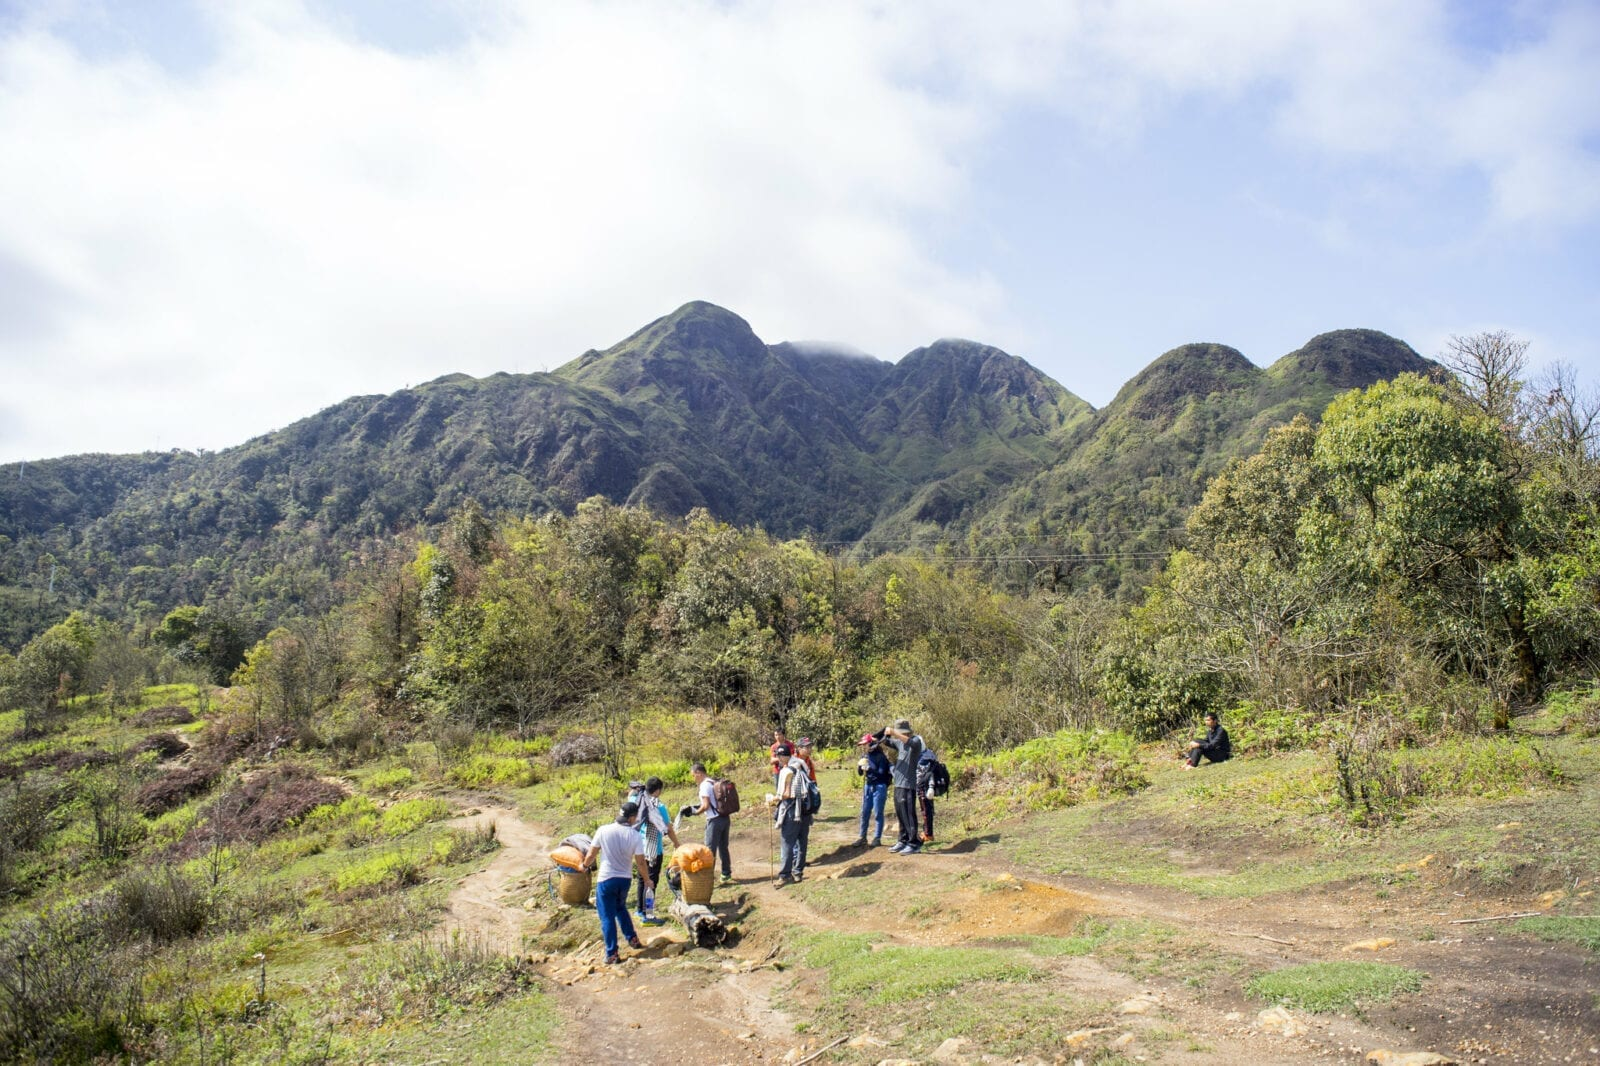 Image of people being guided on a hiking tour of Fansipan Mountain in Vietnam